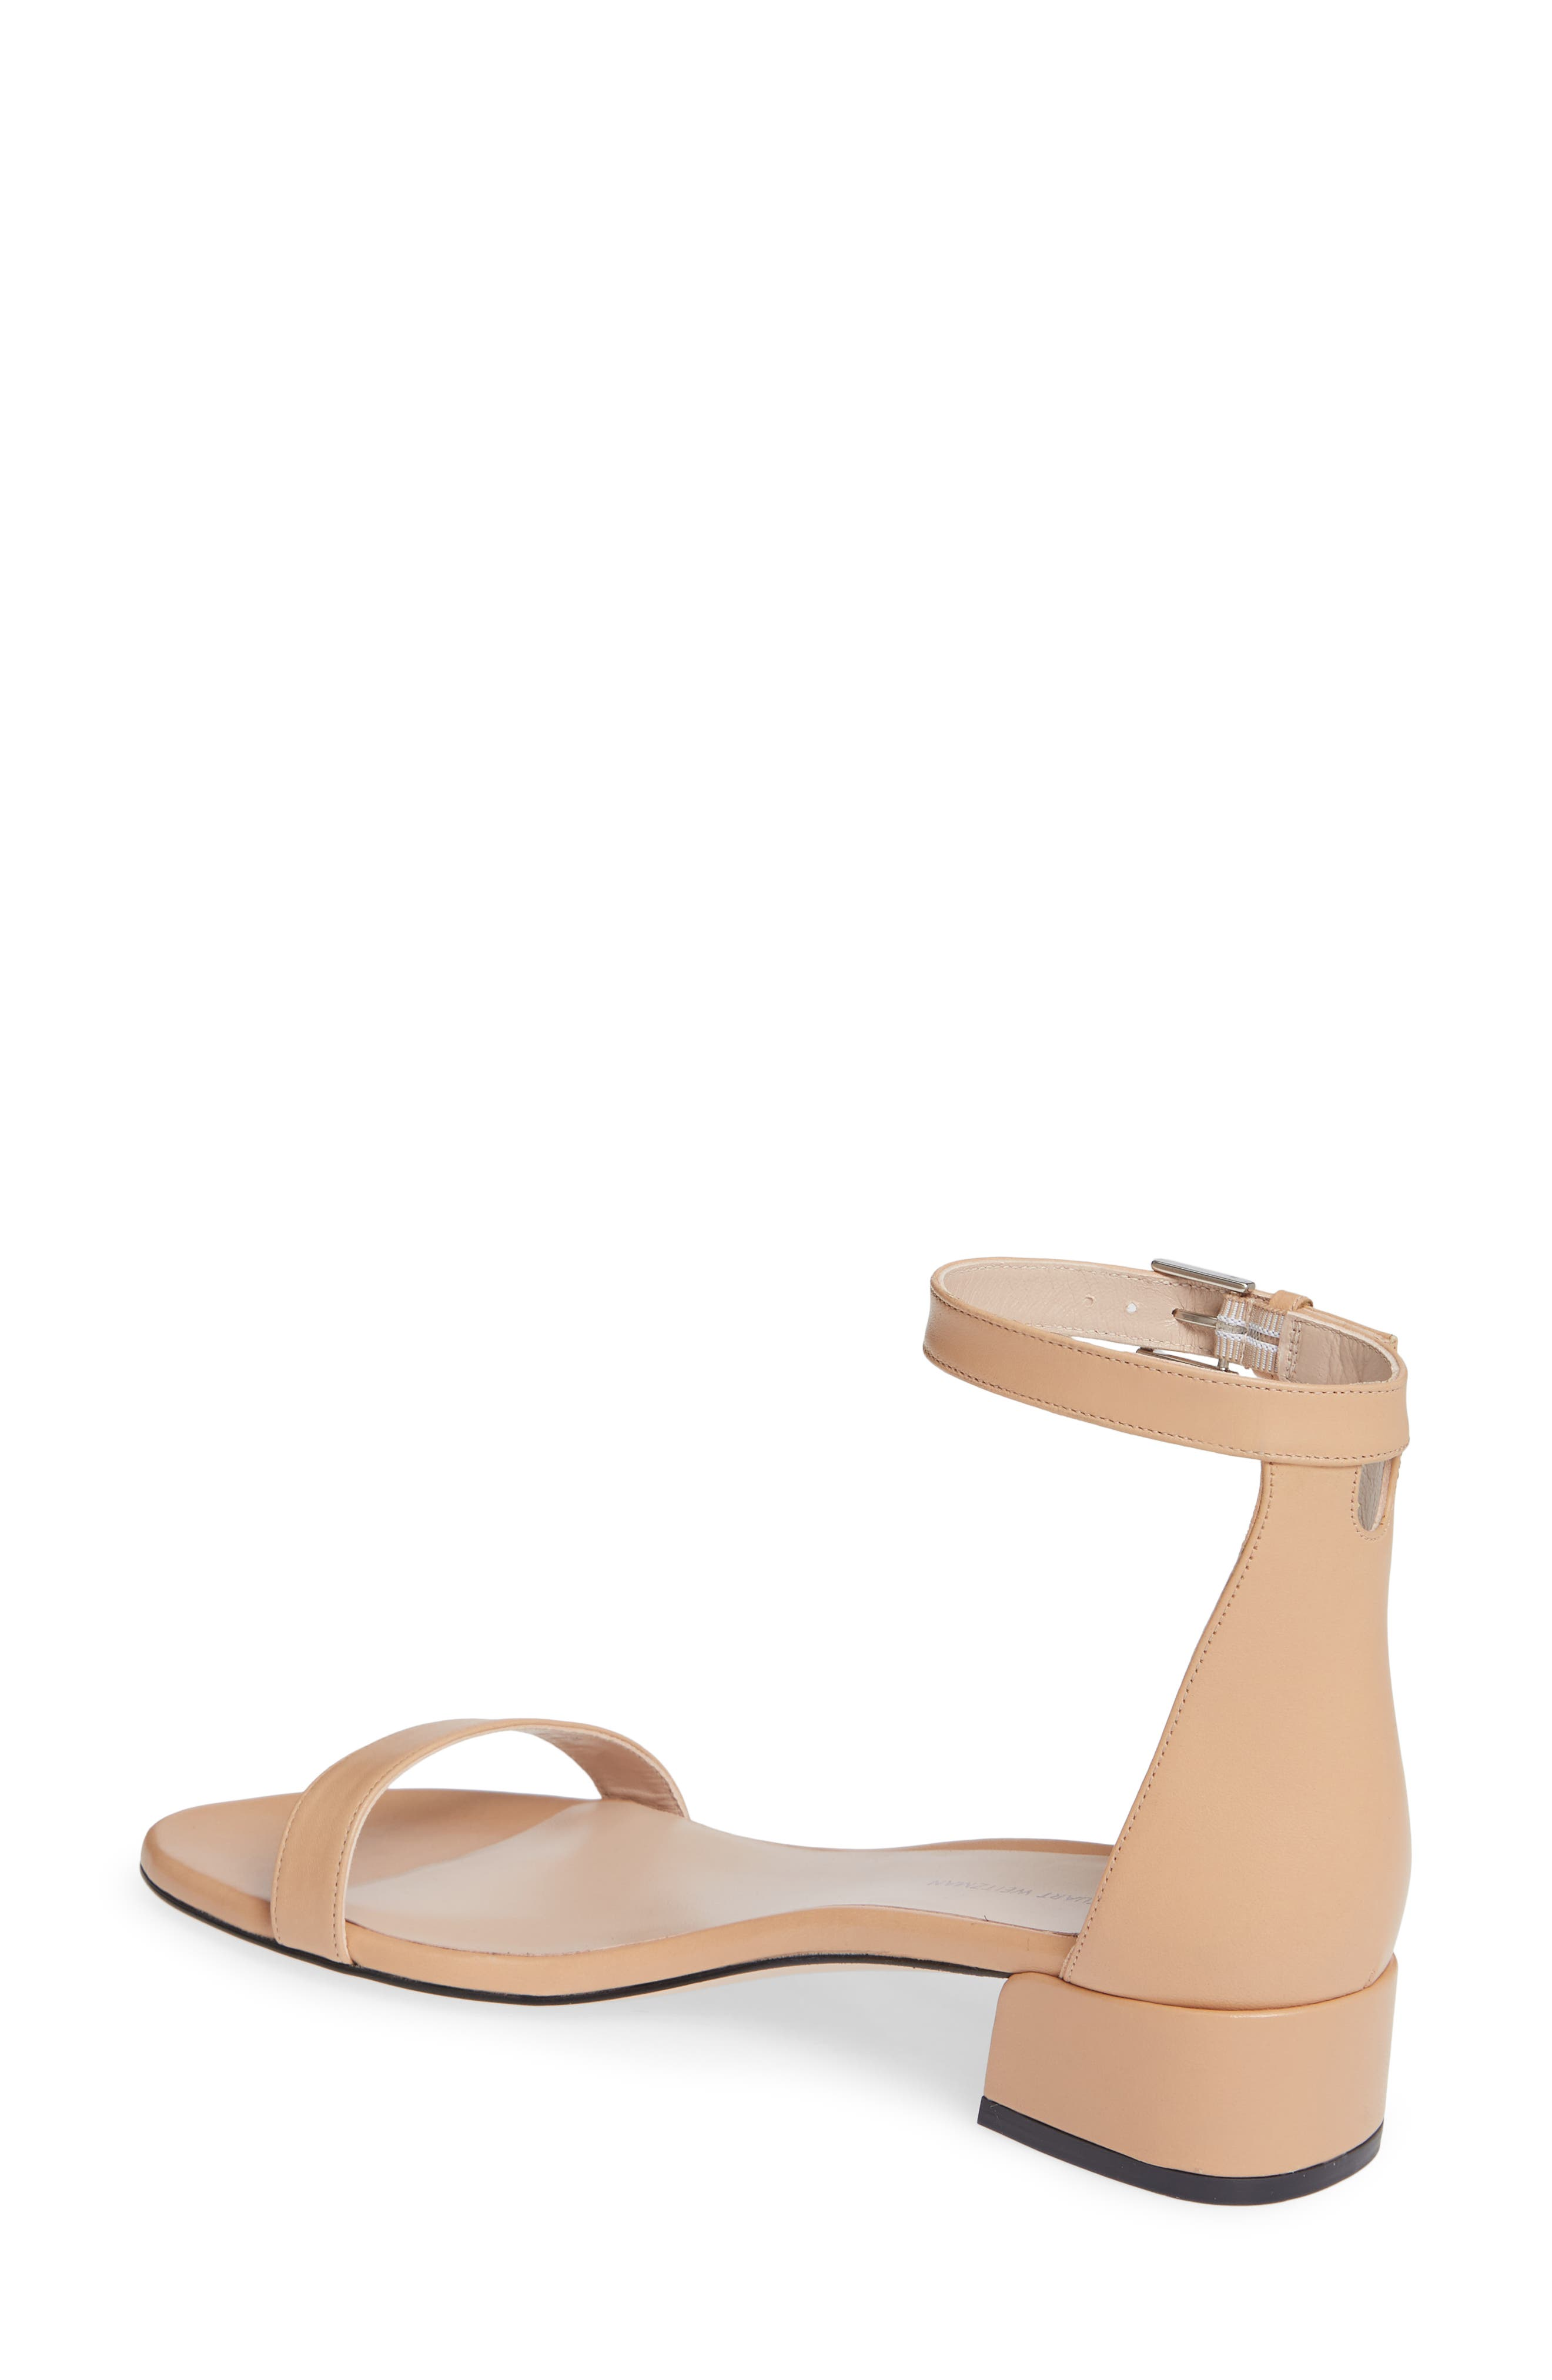 STUART WEITZMAN,                             Nudist Sandal,                             Alternate thumbnail 2, color,                             273